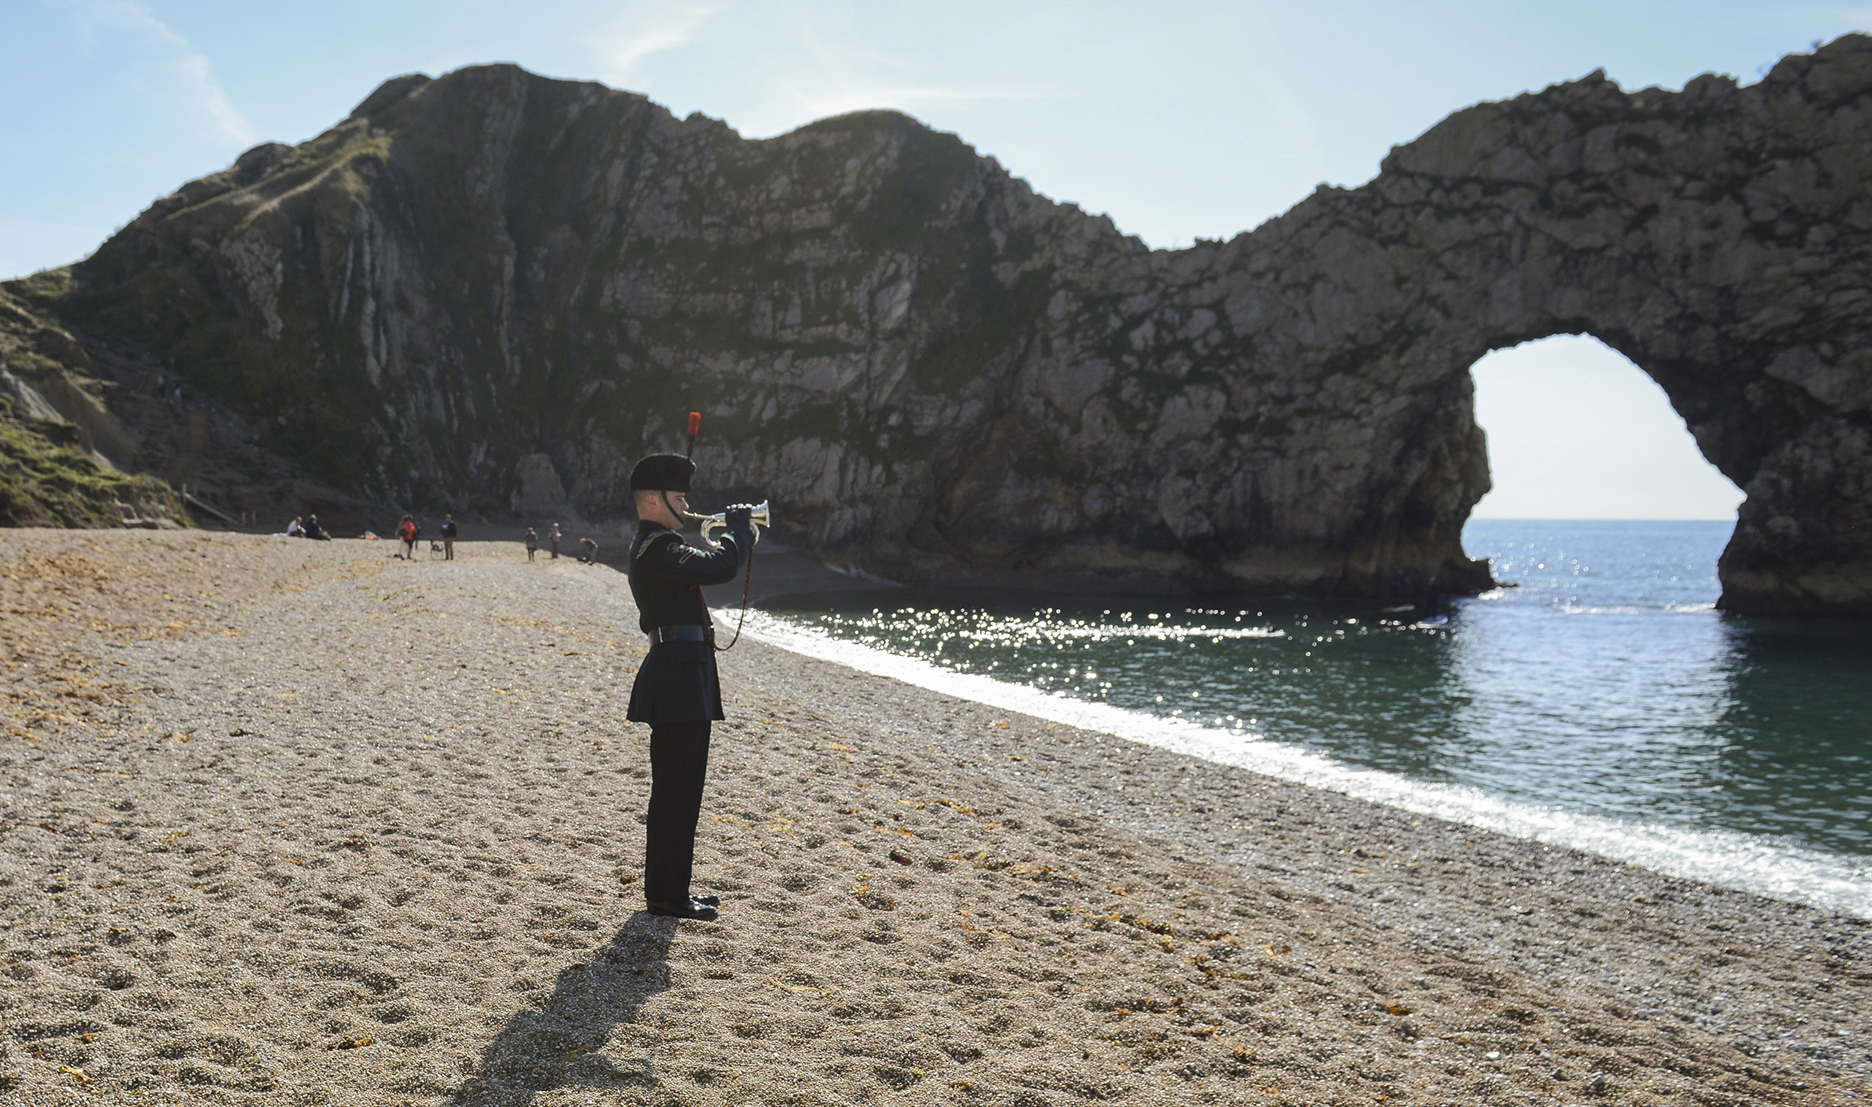 POIGNANT L/Cpl Yaseen at Durdle Door Picture BRITISH ARMY & Durdle Door stars in British Army Last Post video | Dorset Echo